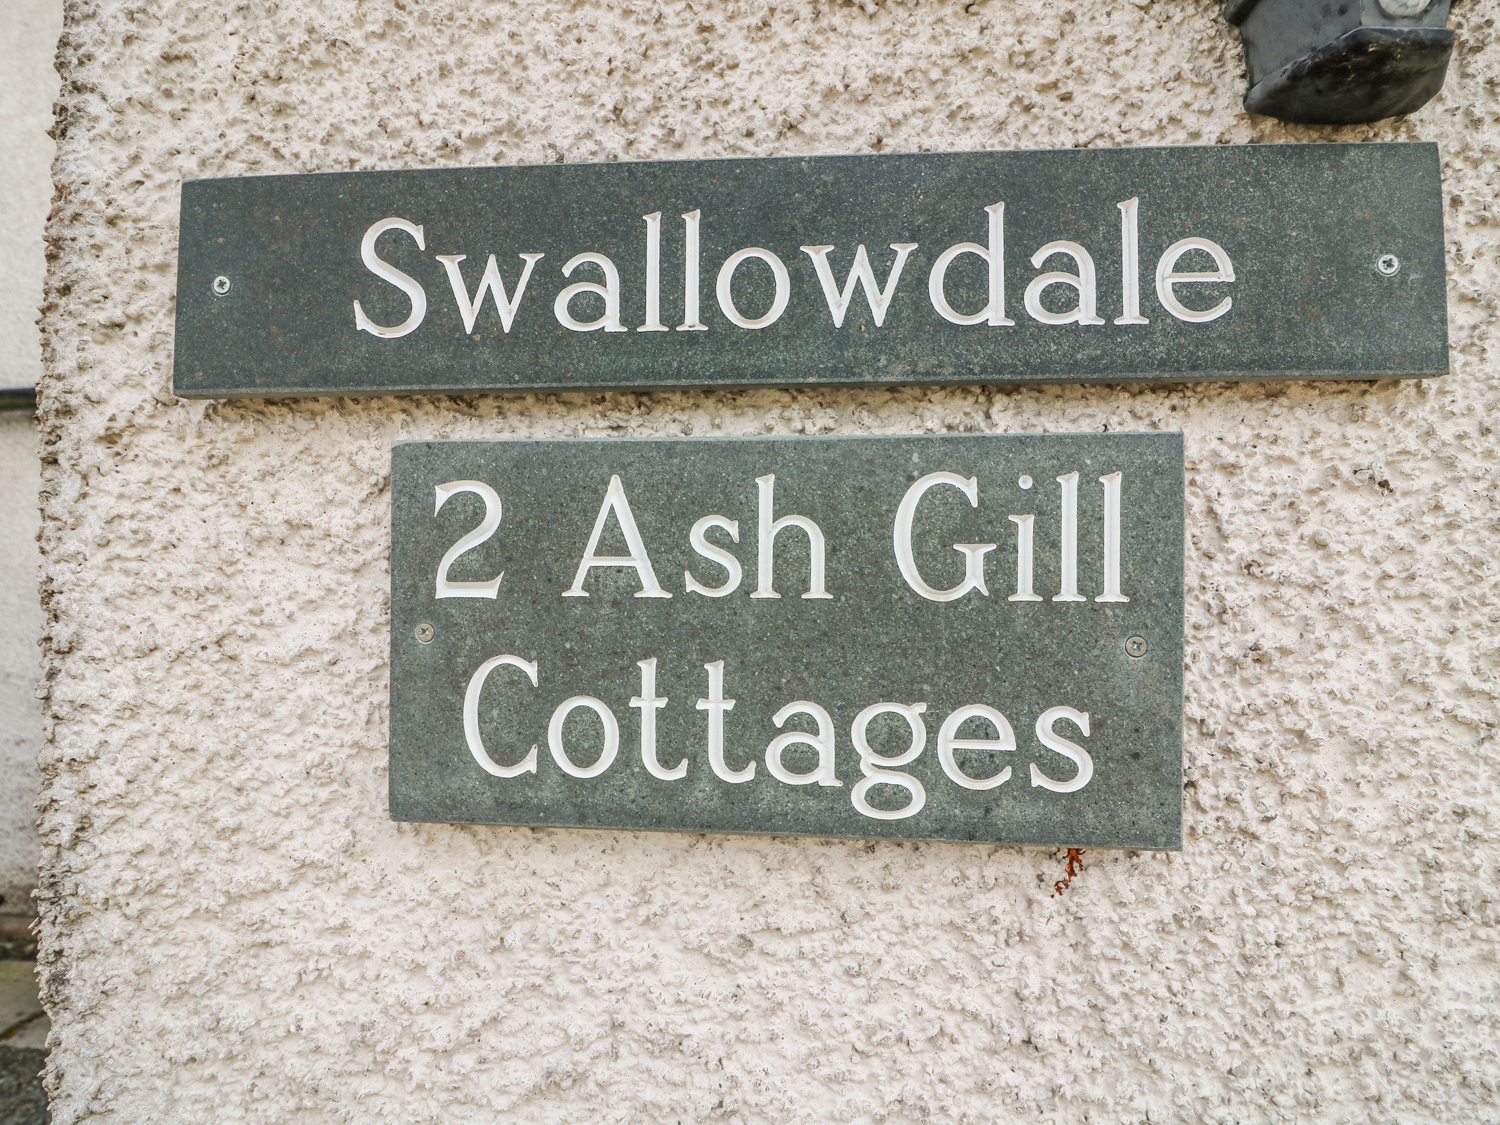 Swallowdale Image 1